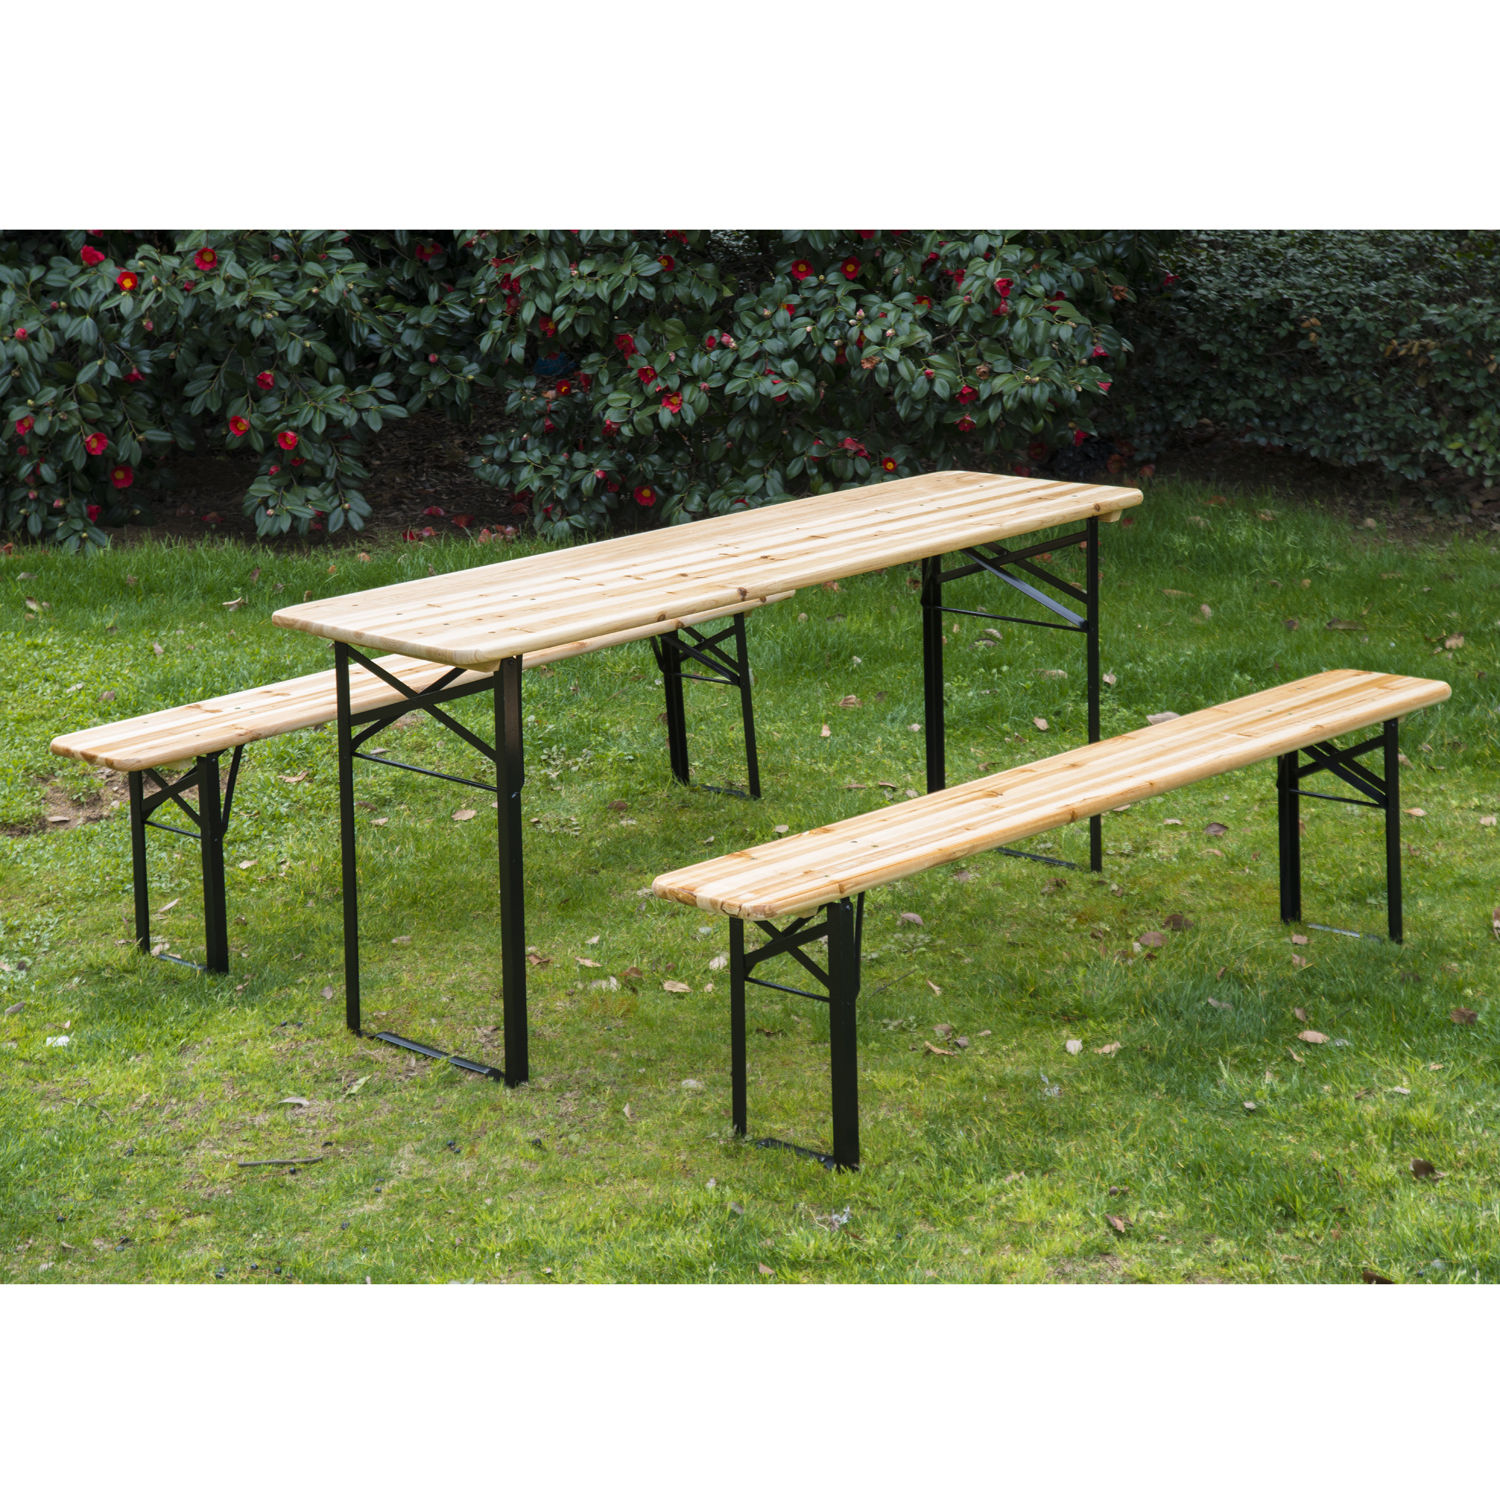 Marvelous Details About Outsunny 6Ft Folding Wooden Picnic Beer Table Benches German Style 20 Wide Wood Creativecarmelina Interior Chair Design Creativecarmelinacom